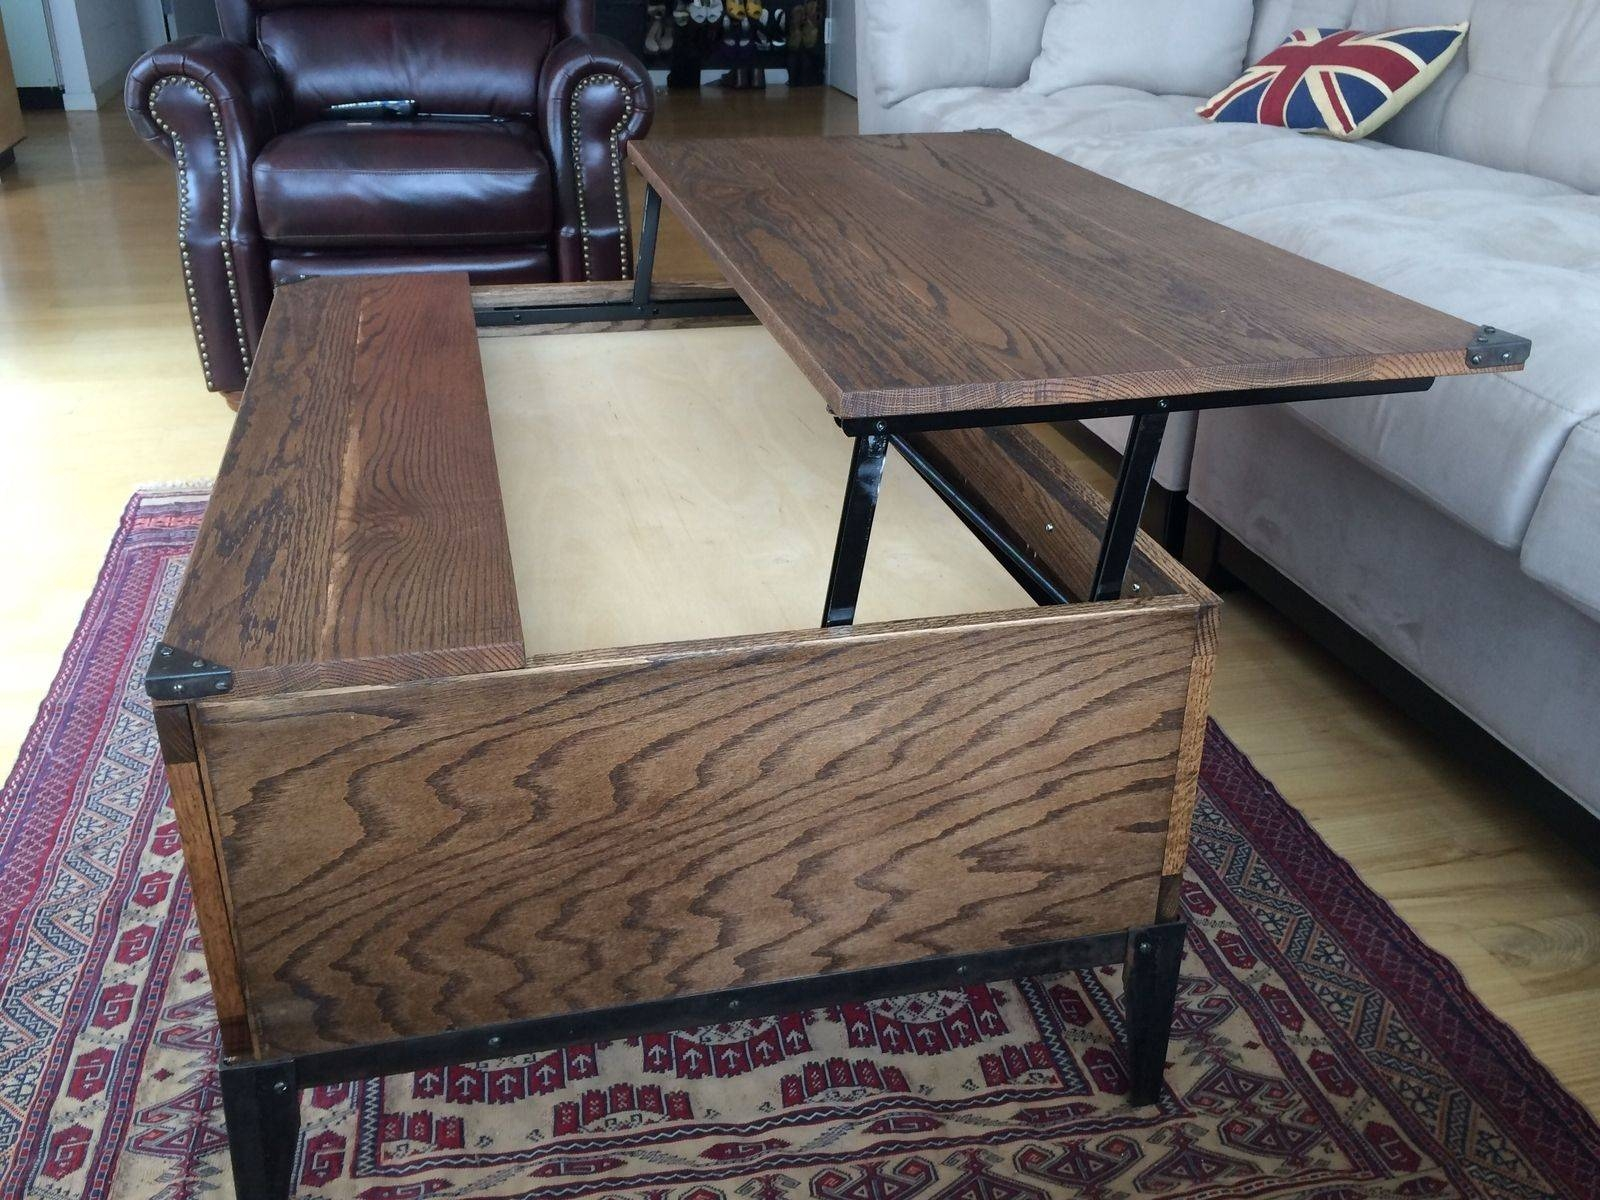 Hand Crafted Lift Top Coffee Tablem.karl, Llc | Custommade pertaining to Lift Top Coffee Table Furniture (Image 12 of 30)